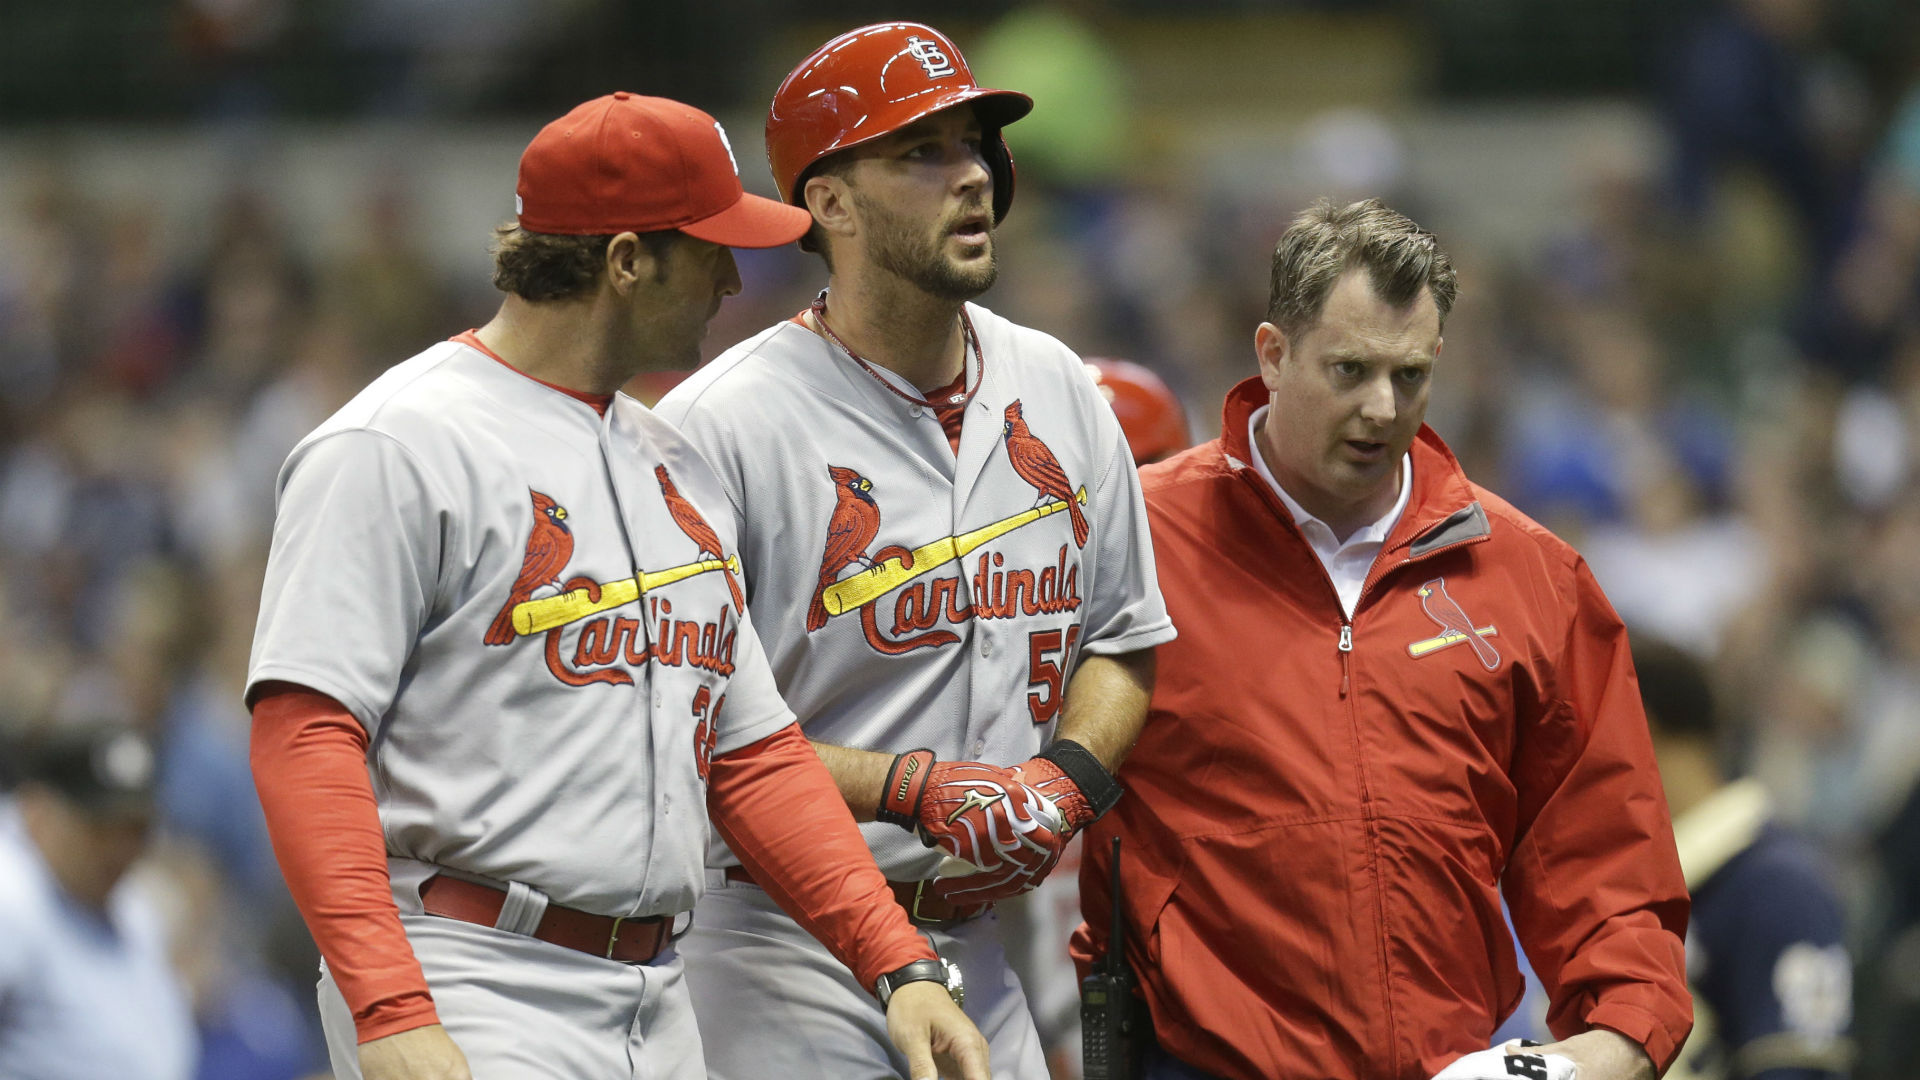 Cardinals' Adam Wainwright leaves game with ankle injury